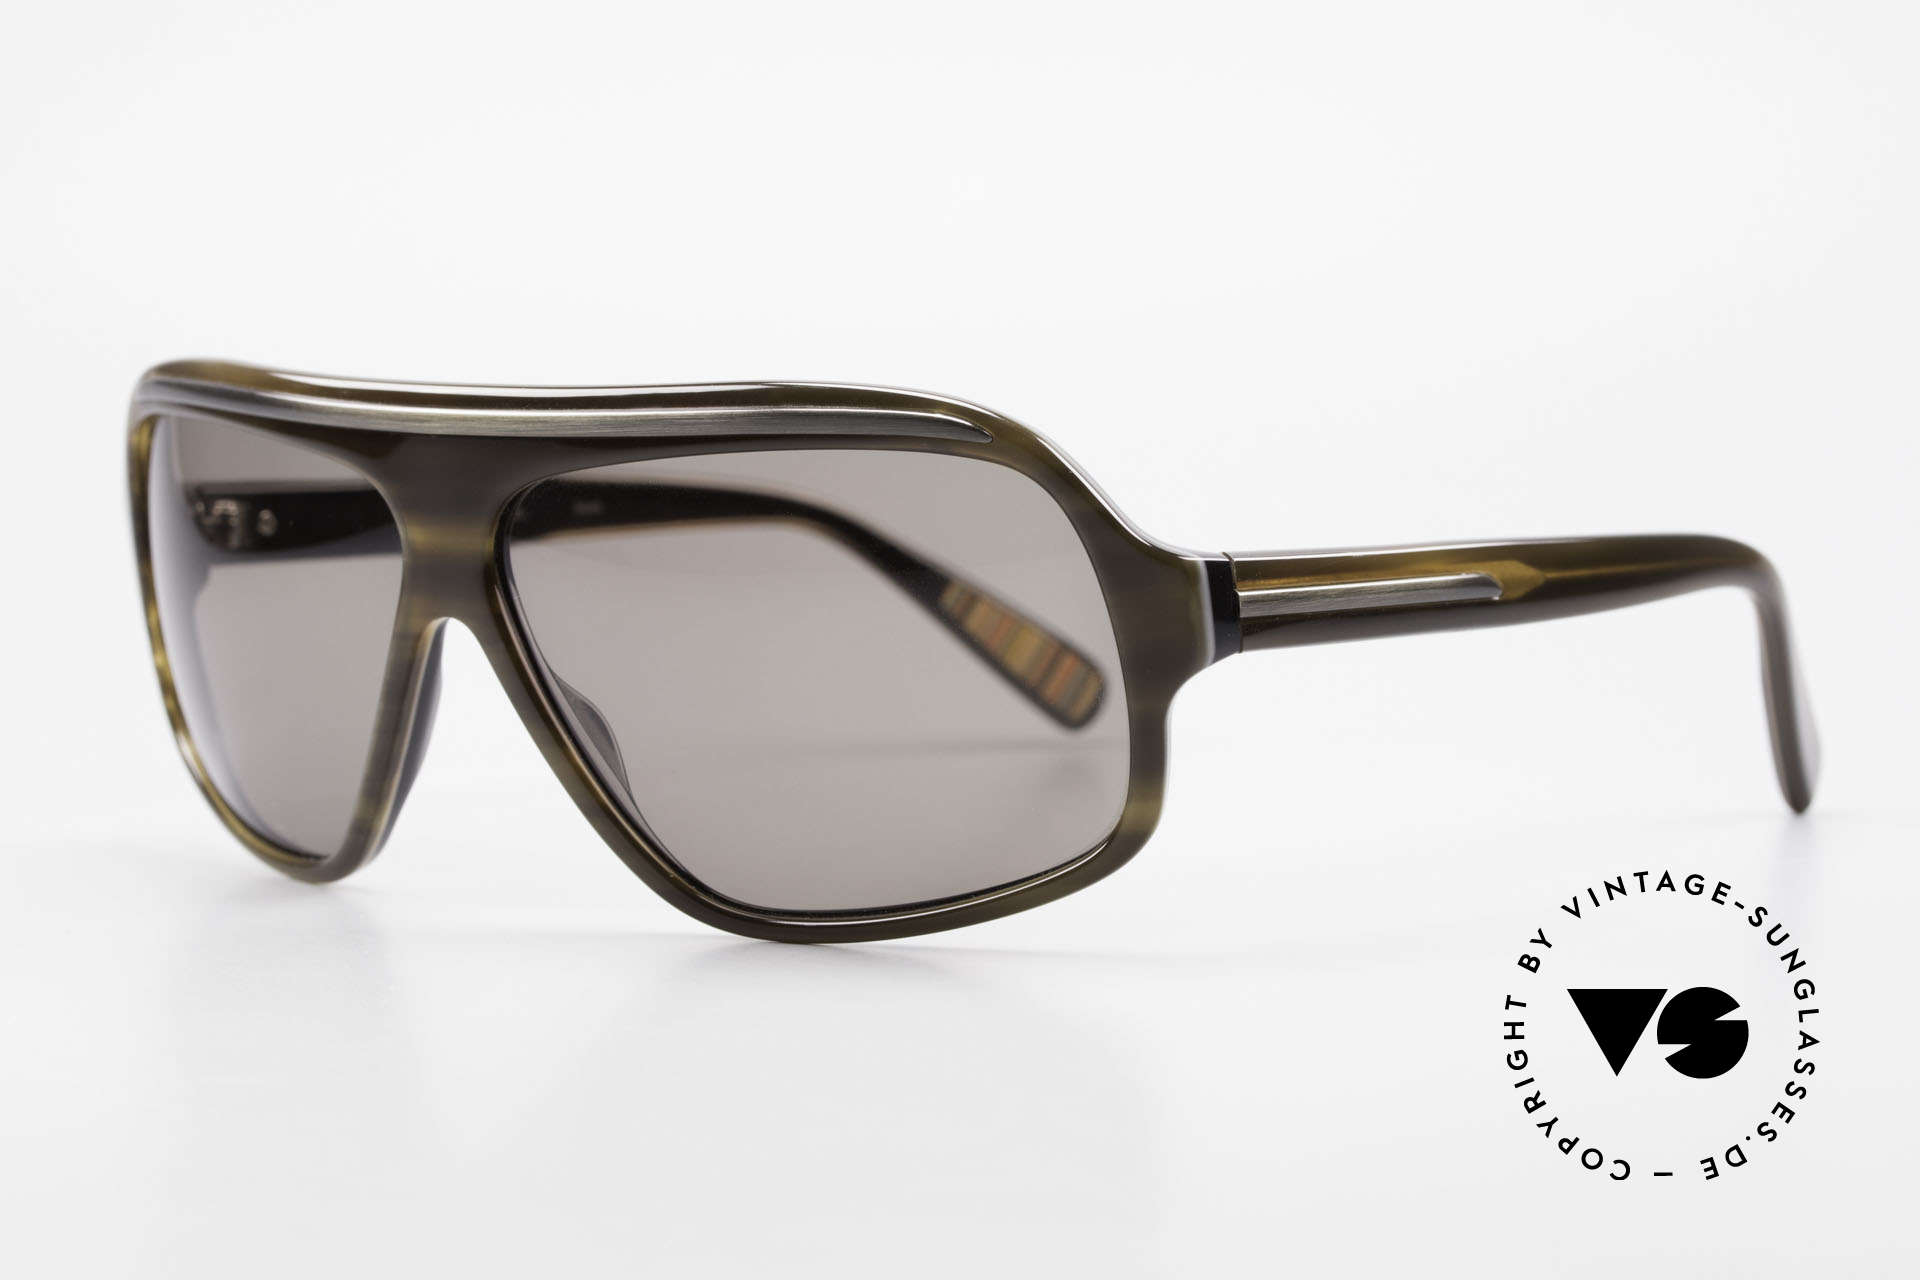 Paul Smith PS382 Vintage Men's Sunglasses 90's, this rare OLD Paul Smith Original is still 'made in Japan', Made for Men